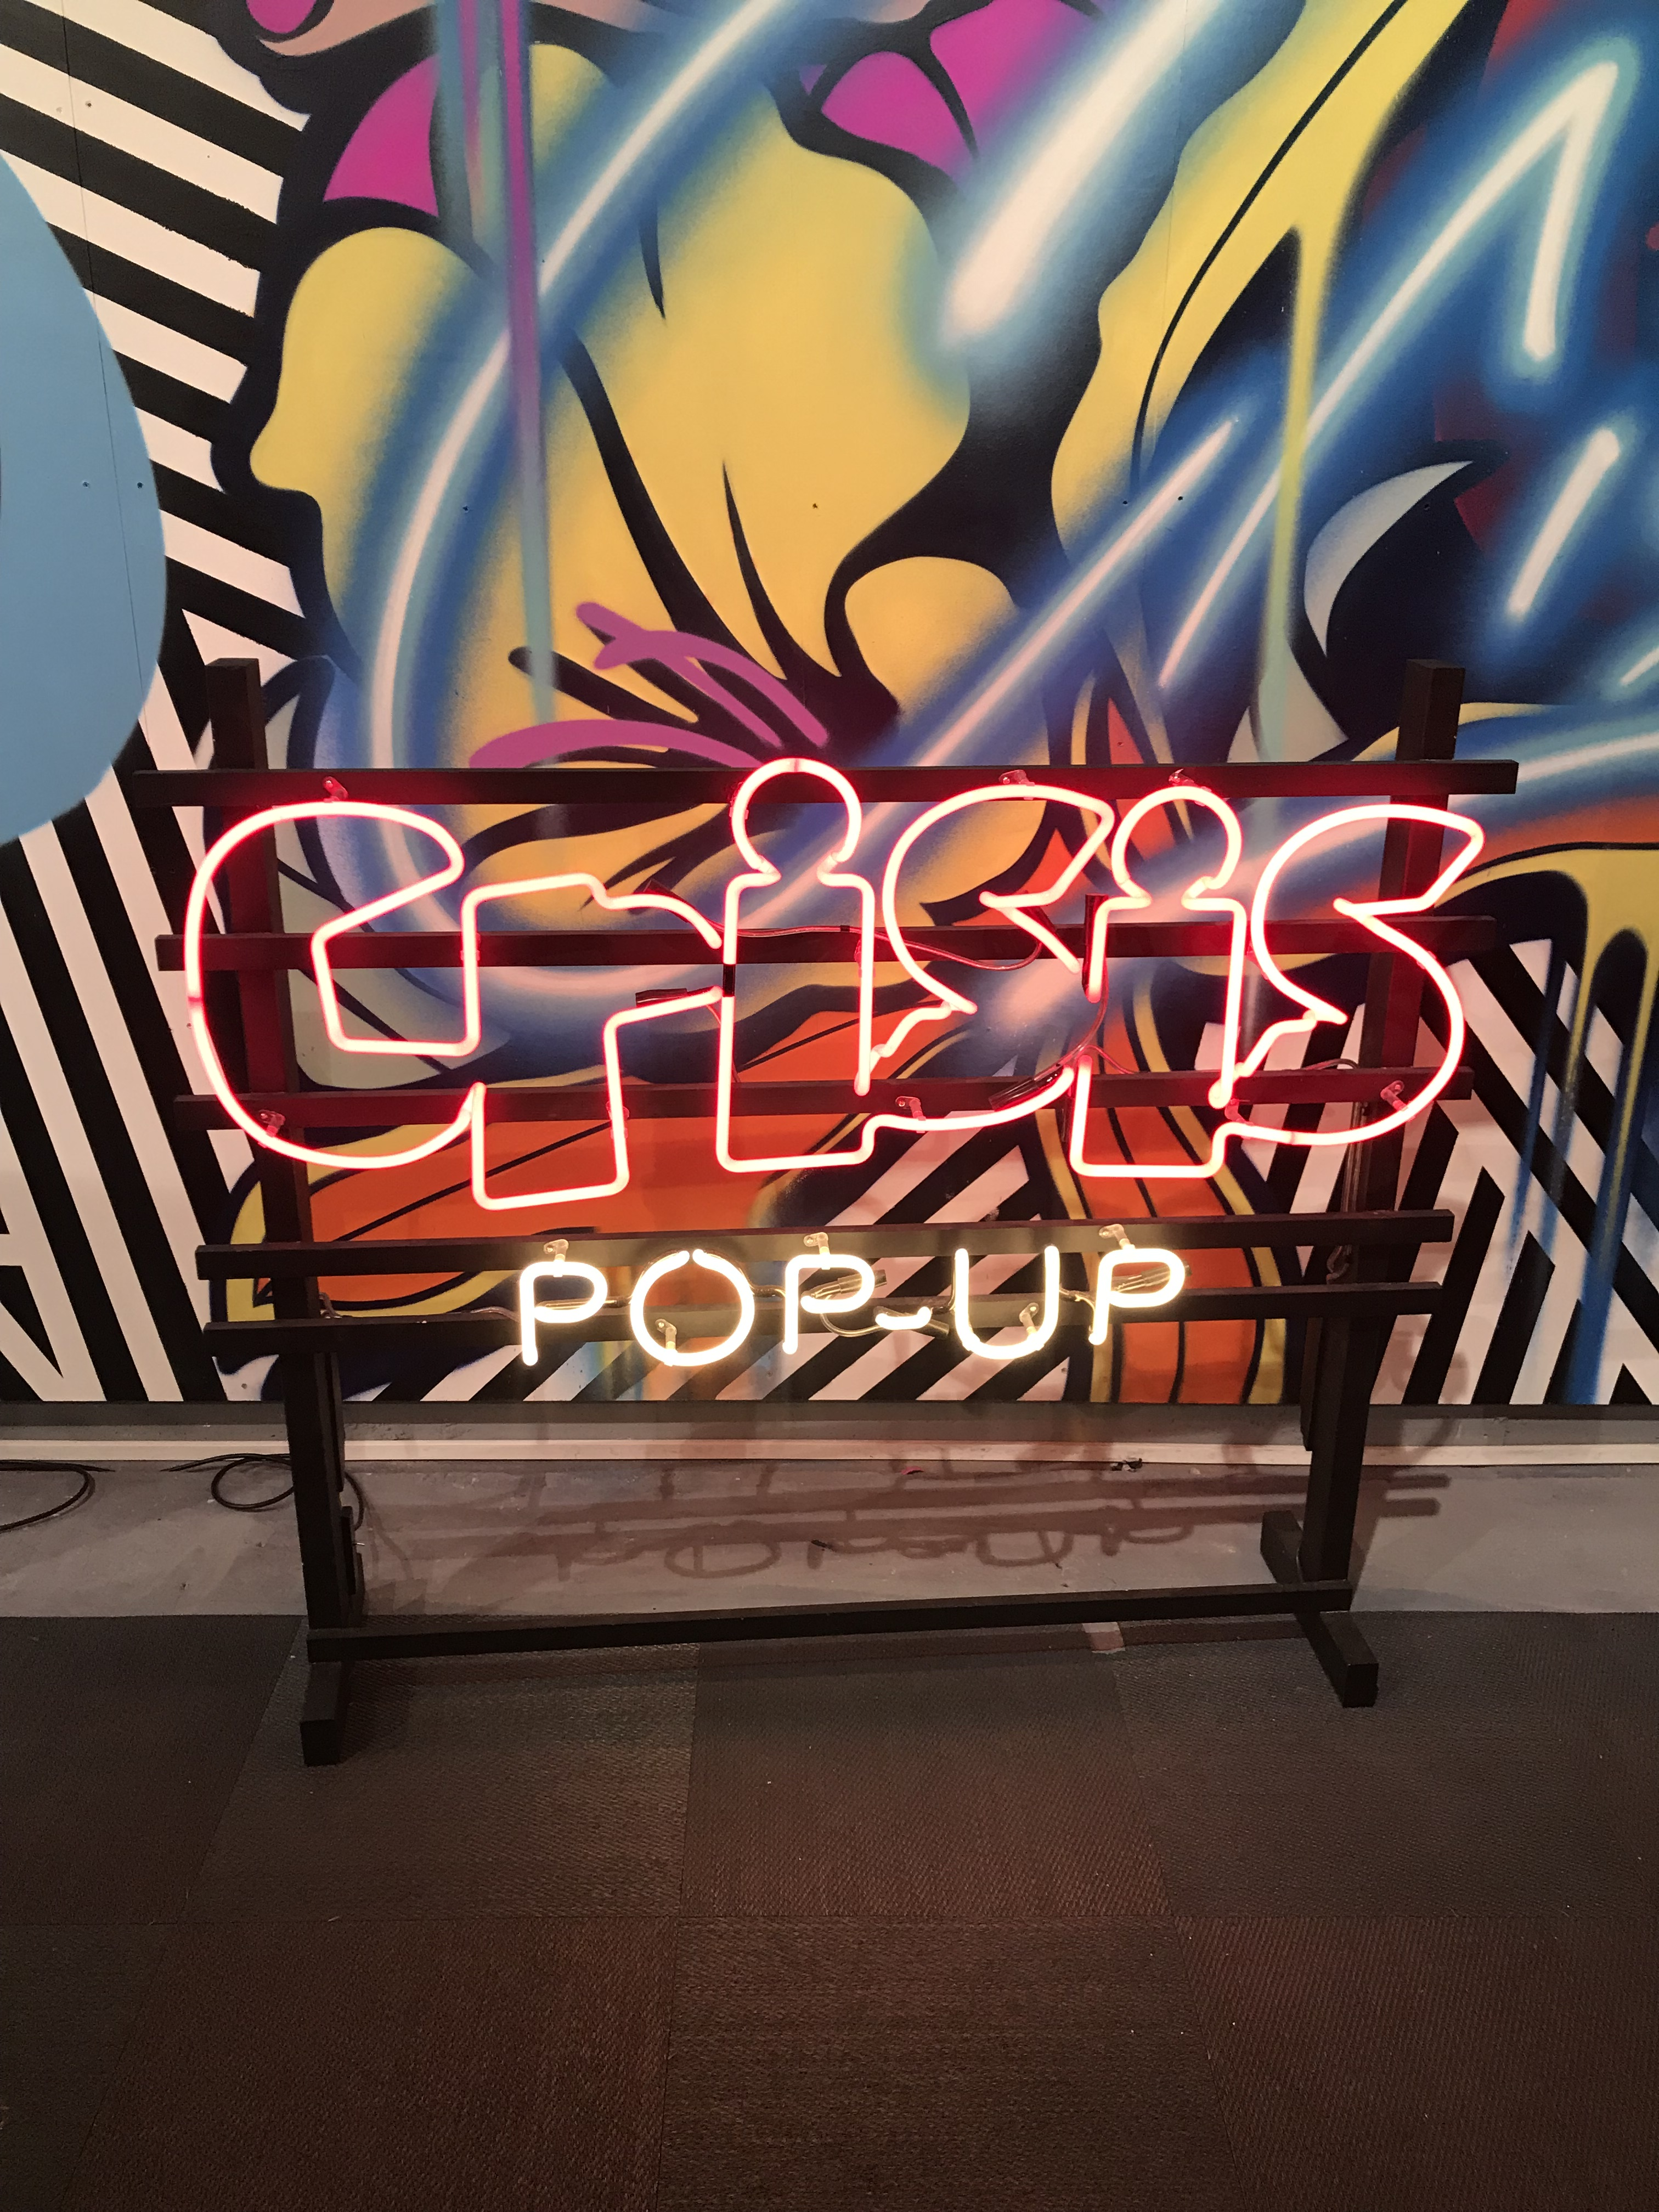 The street artist Ben Eine has done the interiors of the Savile Row pop-up shop.